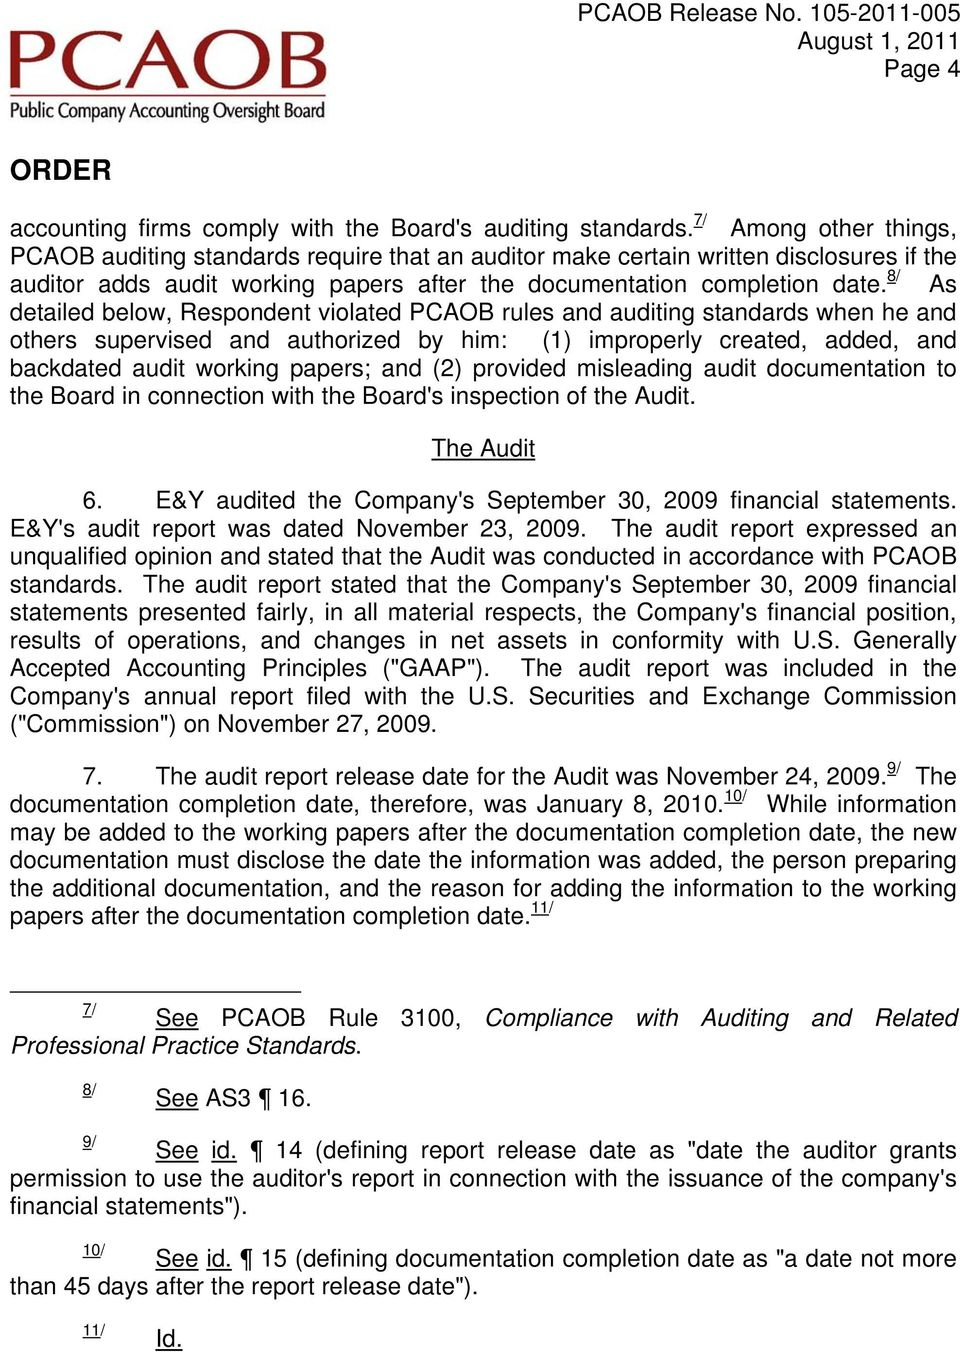 8/ As detailed below, Respondent violated PCAOB rules and auditing standards when he and others supervised and authorized by him: (1 improperly created, added, and backdated audit working papers; and